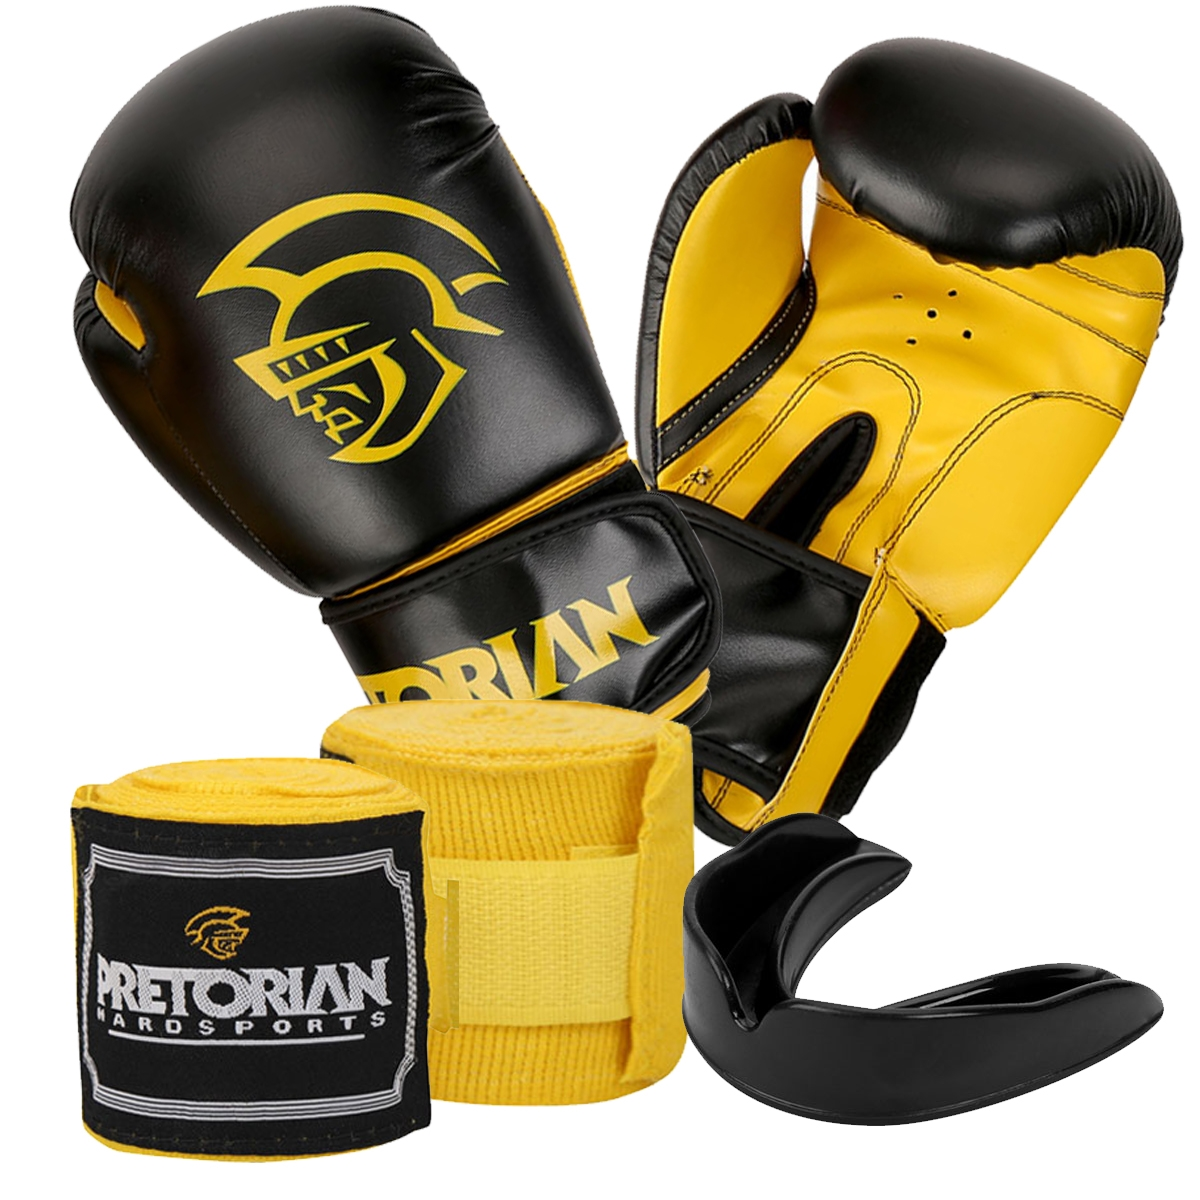 10c446998 KIT BOXE MUAY THAI FIRST PRETORIAN BUCAL + BANDAGEM + LUVA 10 OZ ...